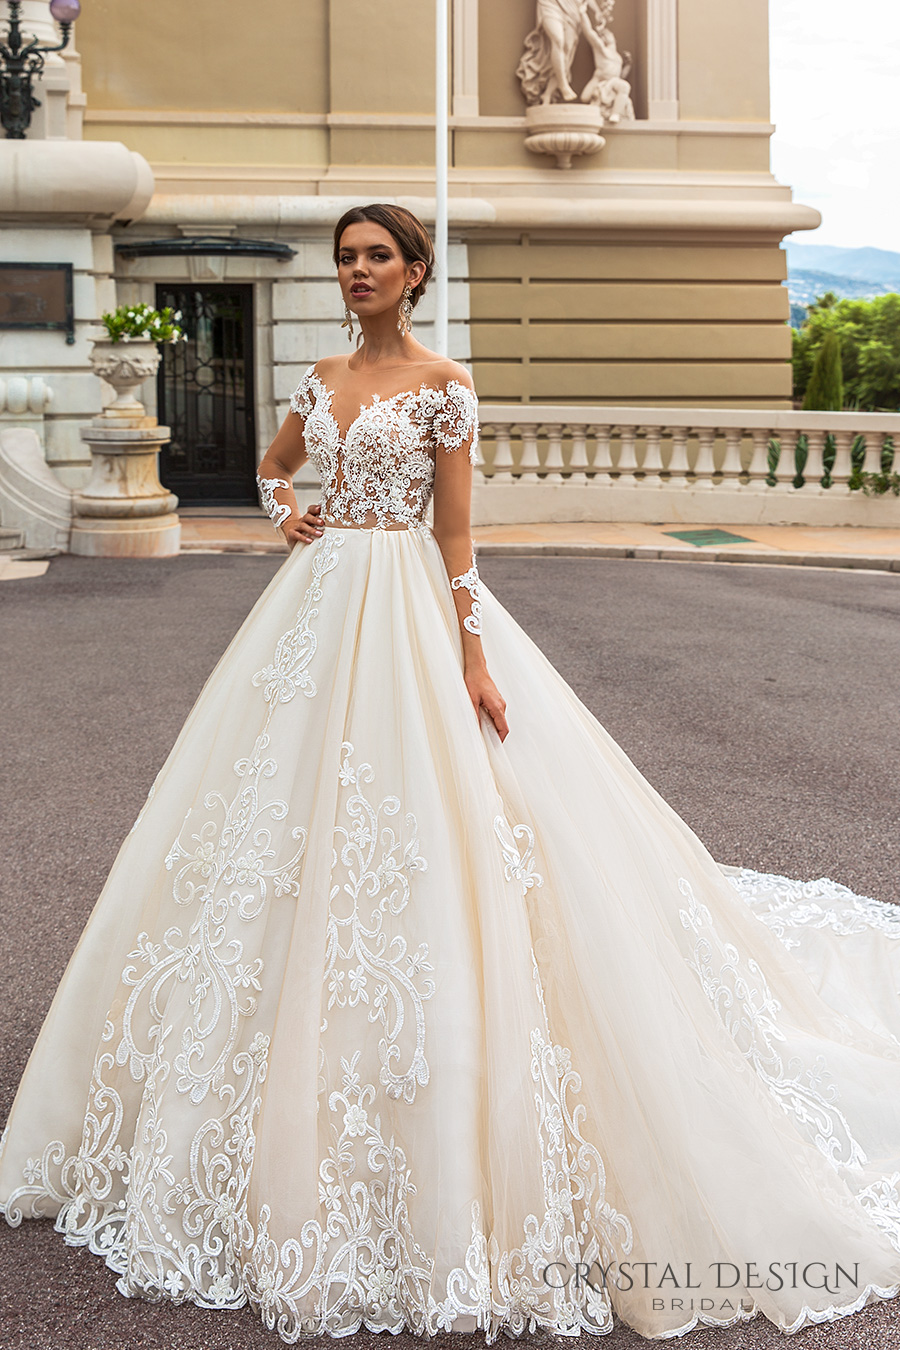 Fustane Nusesh !! - Faqe 28 Crystal-design-2017-bridal-long-sleeves-off-the-shoulder-deep-sweetheart-neckline-heavily-embellished-bodice-elegant-princess-a-line-wedding-dress-keyhole-back-royal-train-ellery-mv